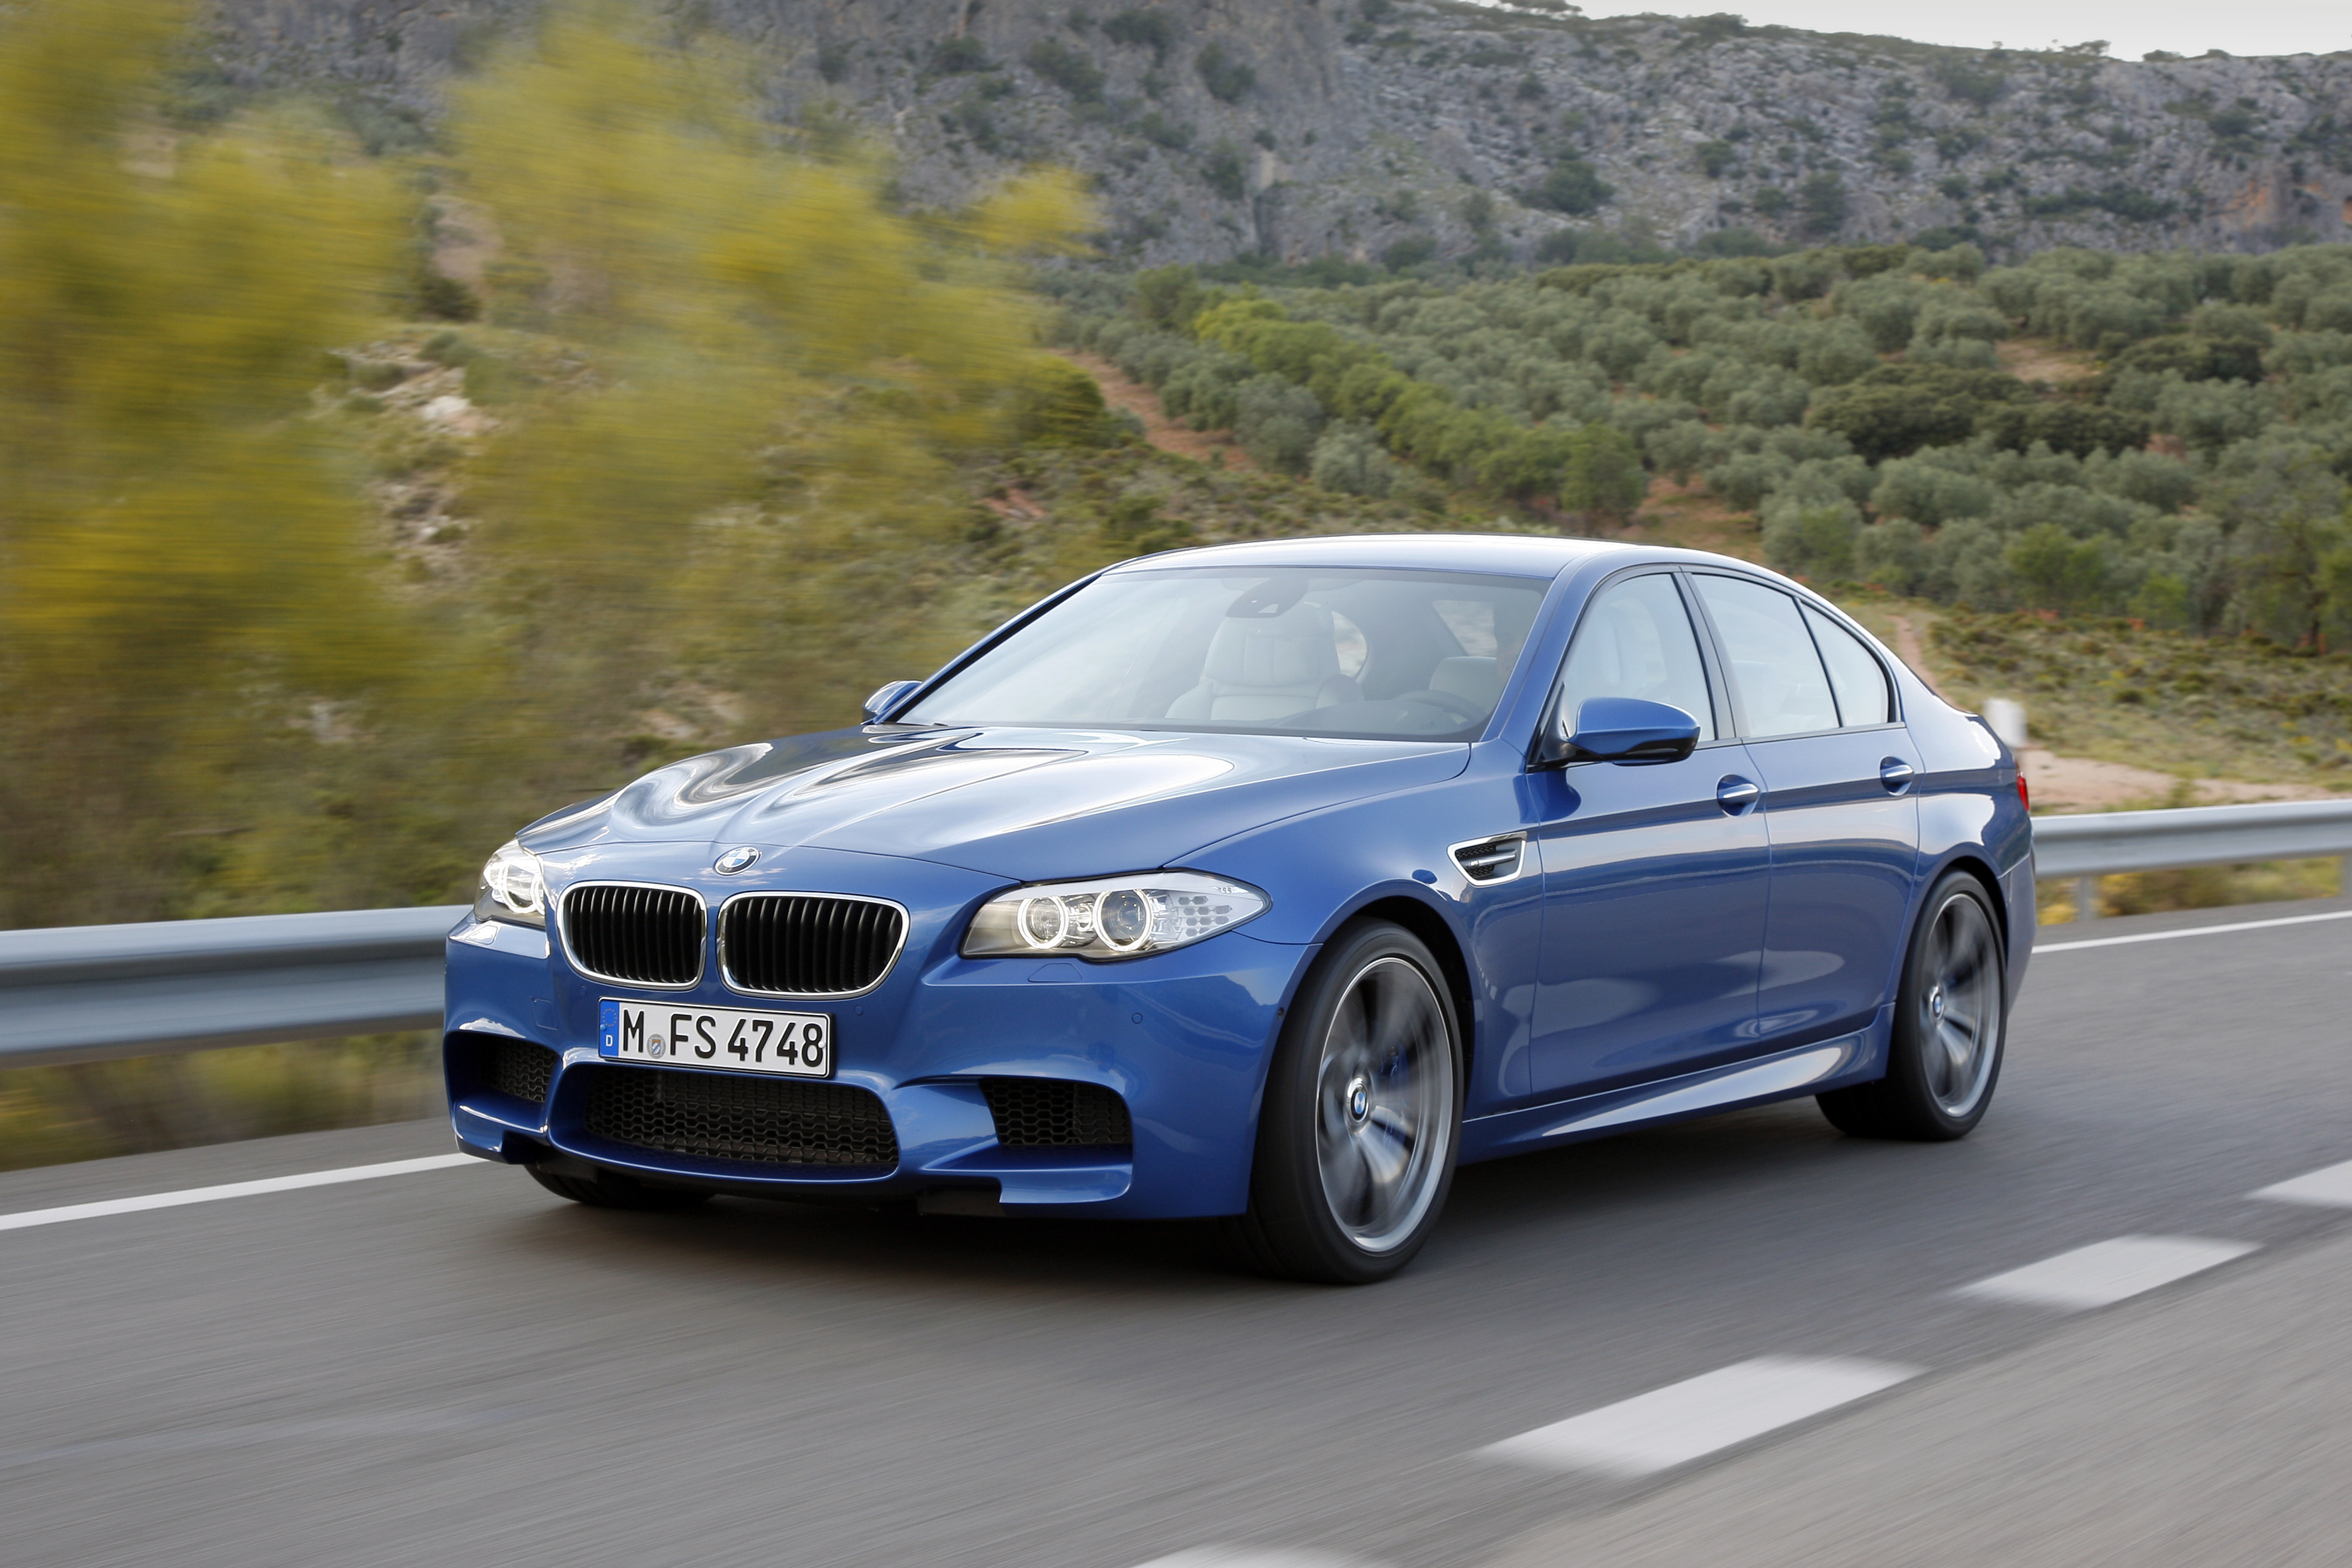 OFFICIAL BMW M5 Production pics high resolution!-p90078322.jpg